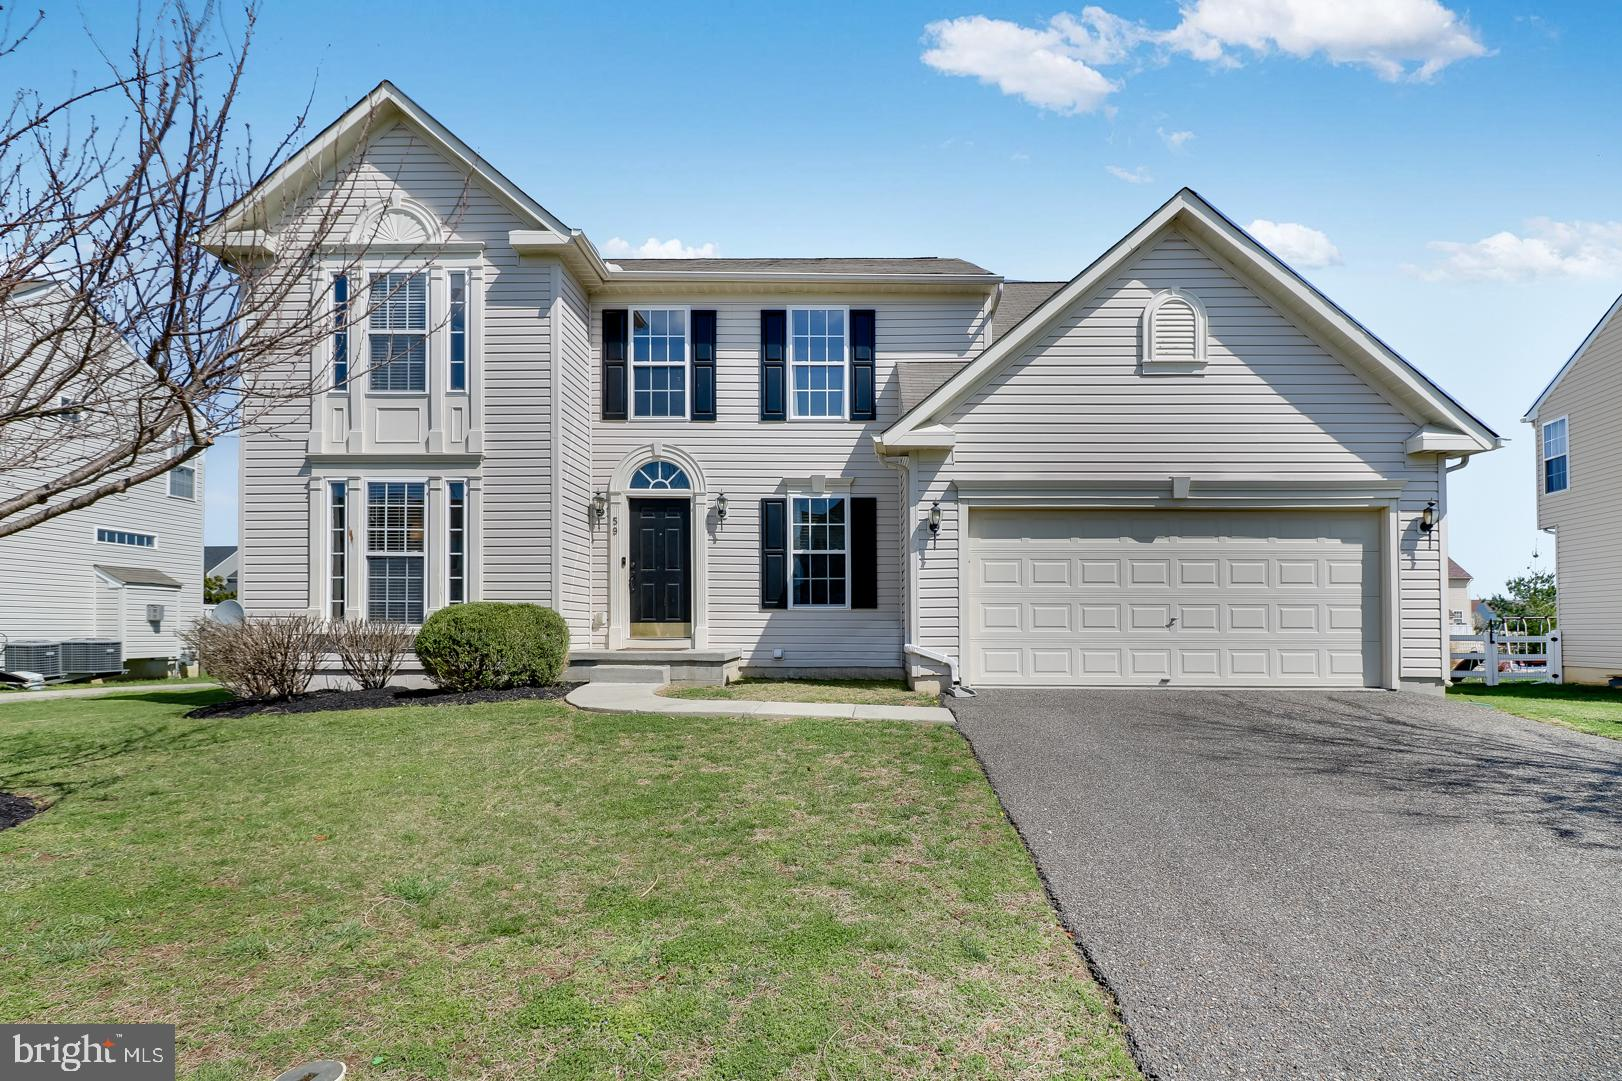 """Welcome to the Beautiful Community of Providence Crossing! Just minutes from shopping and dining, this gorgeous 4 bedroom 2.5 bathroom home sits on just under 1/4 acres with a back yard large enough for a pool, deck, playground or all of the above! General features include energy efficient LED lights, beautifully updated utility room with dimmable under cabinet lighting, and 2"""" blinds throughout the home. Enter the home to a two story foyer open to the upper floor, natural hardwood flooring and a view to every corner of the home.  You'll find a spacious and versatile formal living room that can be used as a home office, and an updated half bath with a beautiful level 3 granite countertop and waterfall style faucet.  The large open concept kitchen is simply amazing, complete with loads of upgrades and beaming with natural light!  Upgrades include, level 3 Alaska White granite, newly replaced stainless appliances, including a quiet low dB dishwasher, gorgeous stone island with power outlets, and pull out storage drawers inside the soft close espresso cabinets featuring stainless T-bar hardware.  You'll also find a large single bowl granite composite sink, Kraus stainless steel pull down faucet, and newly upgraded 3/4 HP Moen disposal.  Enjoy a cup of coffee in the bright sun filled morning room or cozy up by the gas fireplace complete with automatic on/off blower on those cold winter nights.  Downstairs you'll find a huge basement with over 800 finished square feet and another 530+ unfinished square feet ready for your personal touches.  You'll have room enough for creating a 5th bedroom complete with rough-ins for a 3rd full bath, recreation, media, and whatever you can dream up. Pump it up in the newly designed exercise area with an included head to toe wall of mirrors. Even with all that there's still loads of room for storage.   All four bedrooms are upstairs including a monstrous primary bedroom. Primary bedroom won't disappoint with, crown moulding, two large wa"""